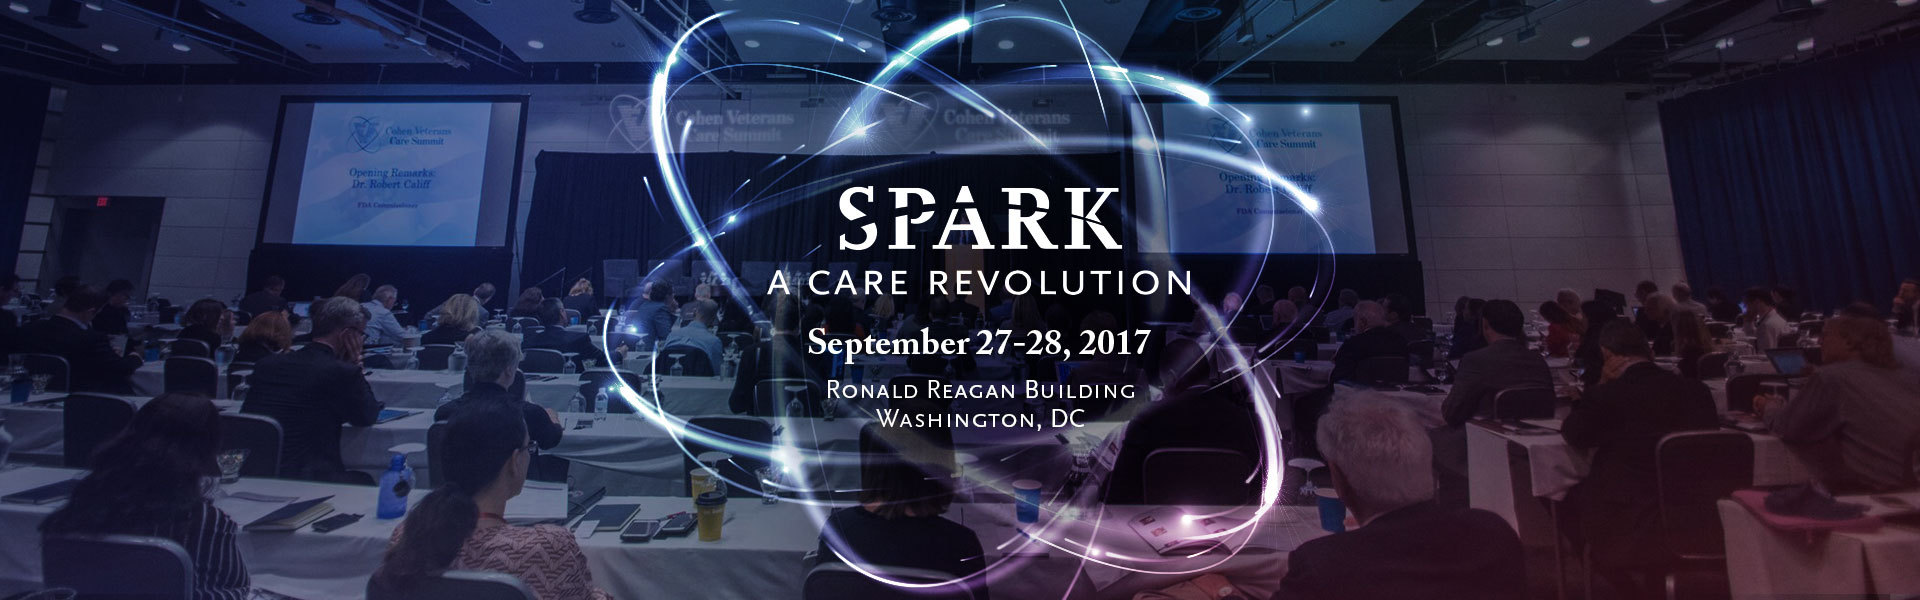 Cohen Veterans Care Summit - Spark a Care Revolution